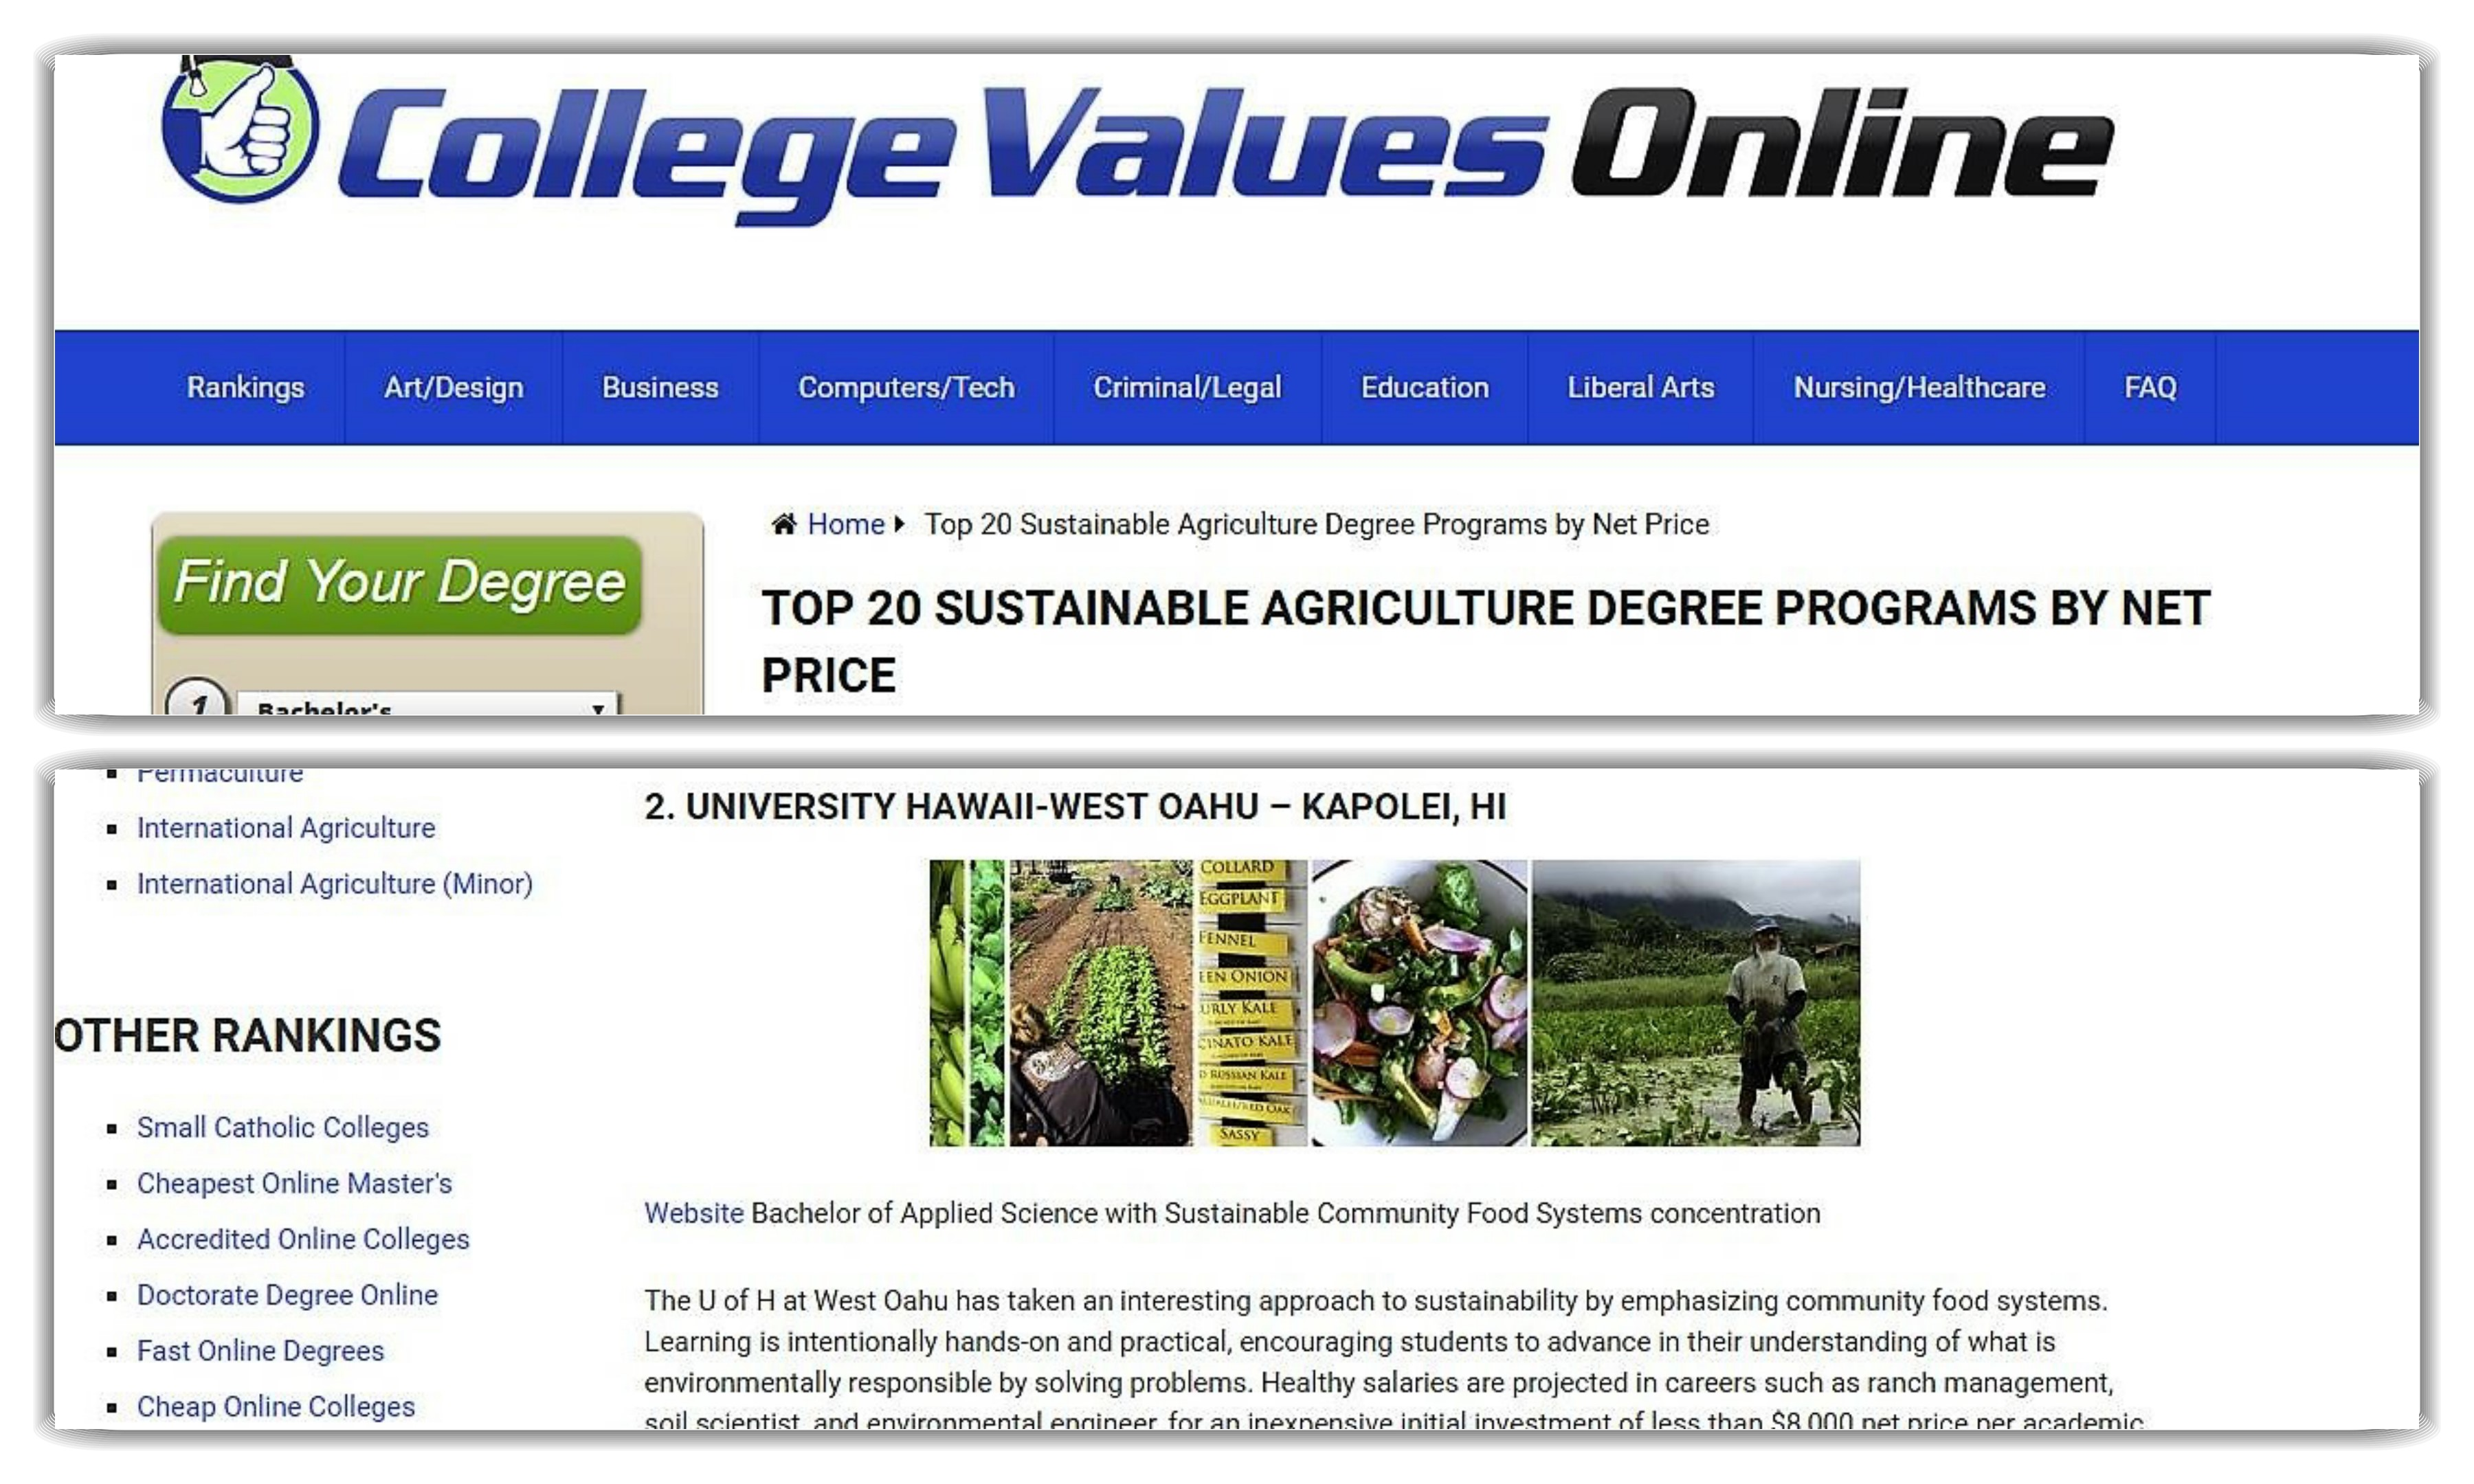 Screen grabs from CollegeValuesOnline.com showing UH West Oahu number 2 ranking